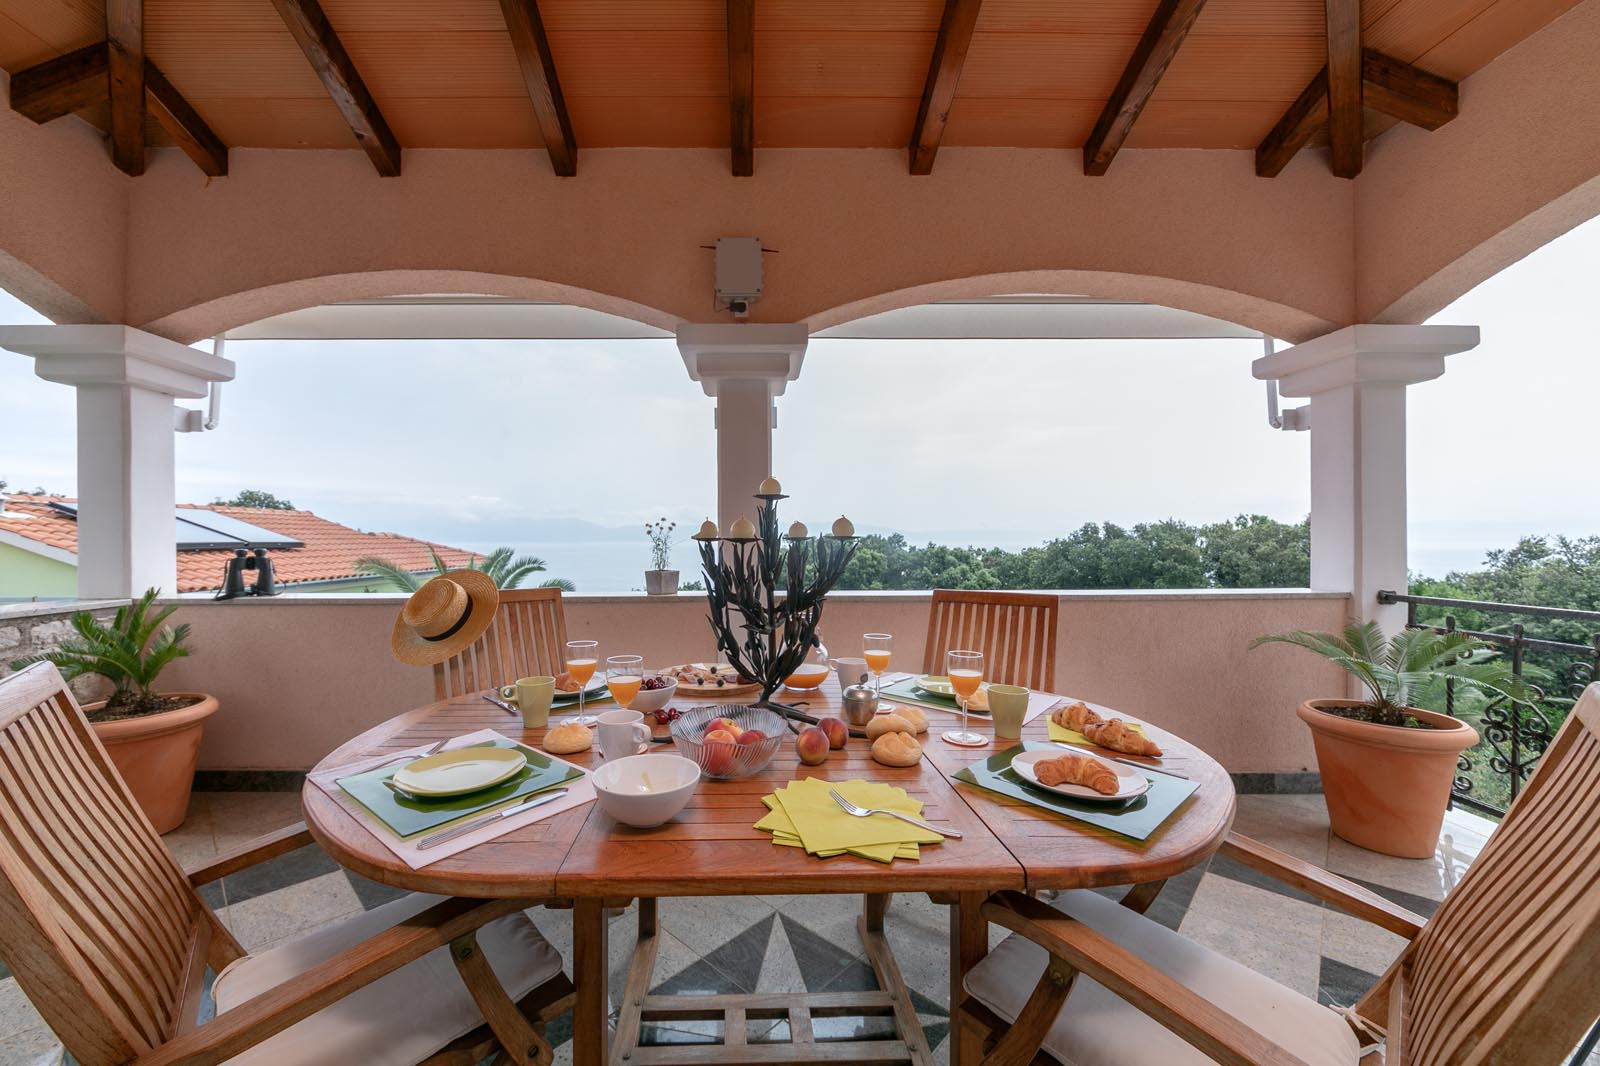 Terrace with beautiful overlooking the sea and islands